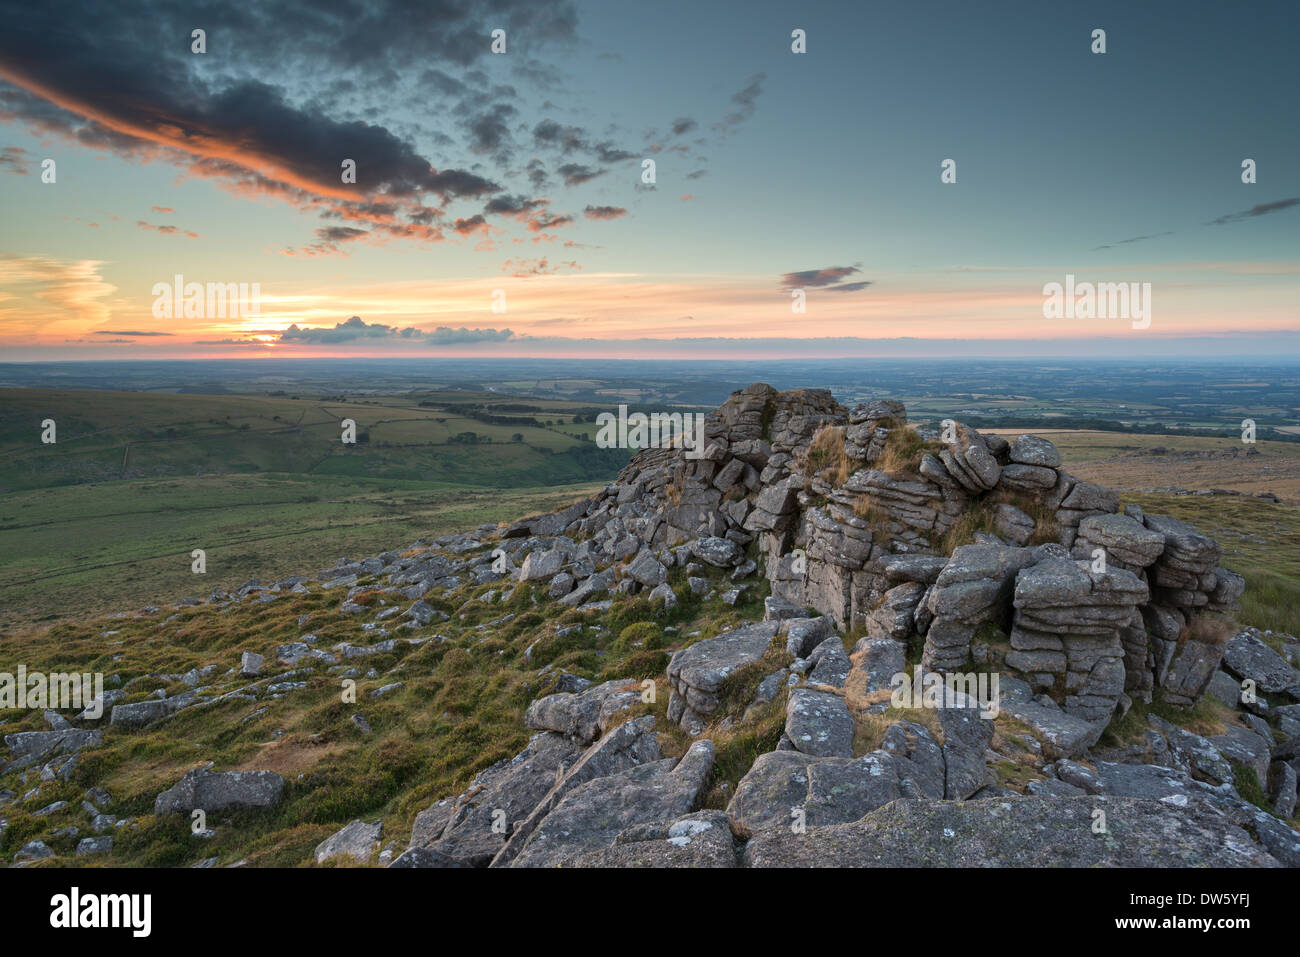 Summer sunset over Dartmoor National Park, Devon, England. Summer (July) 2013. - Stock Image